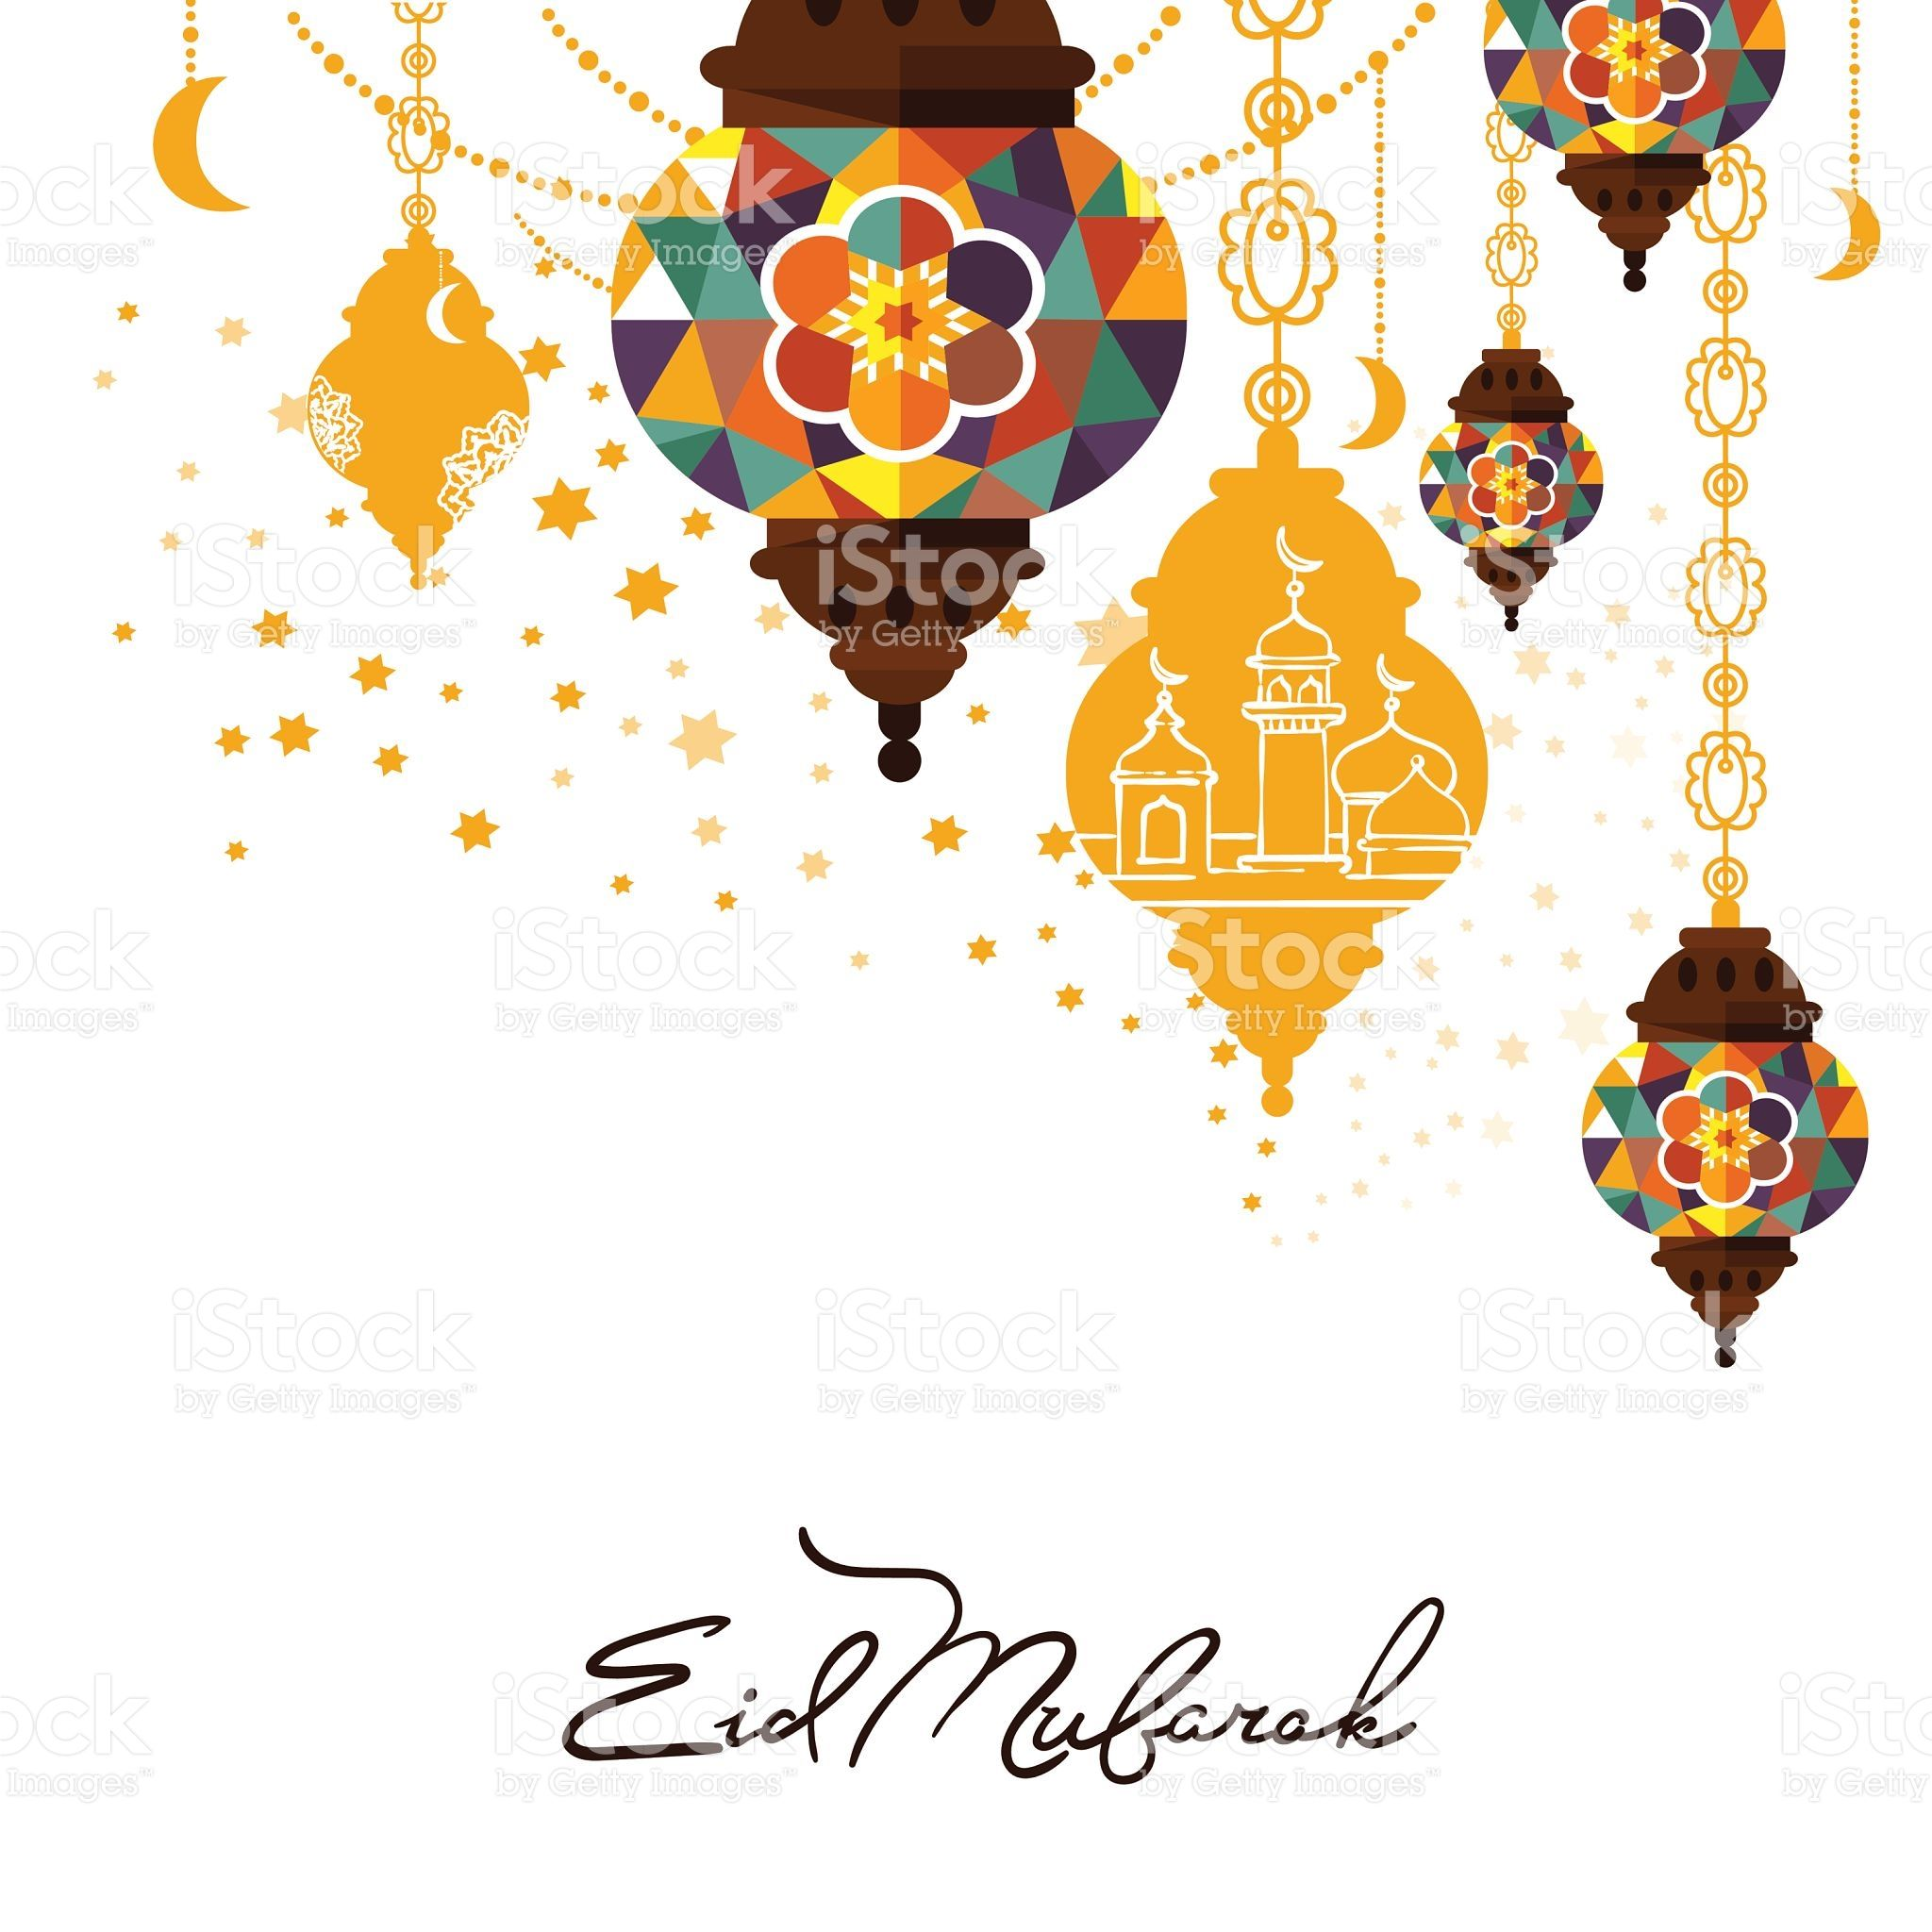 Eid mubarak greeting card vector illustration muslim festival eid mubarak arabic muslim card design royalty free stock vector art m4hsunfo